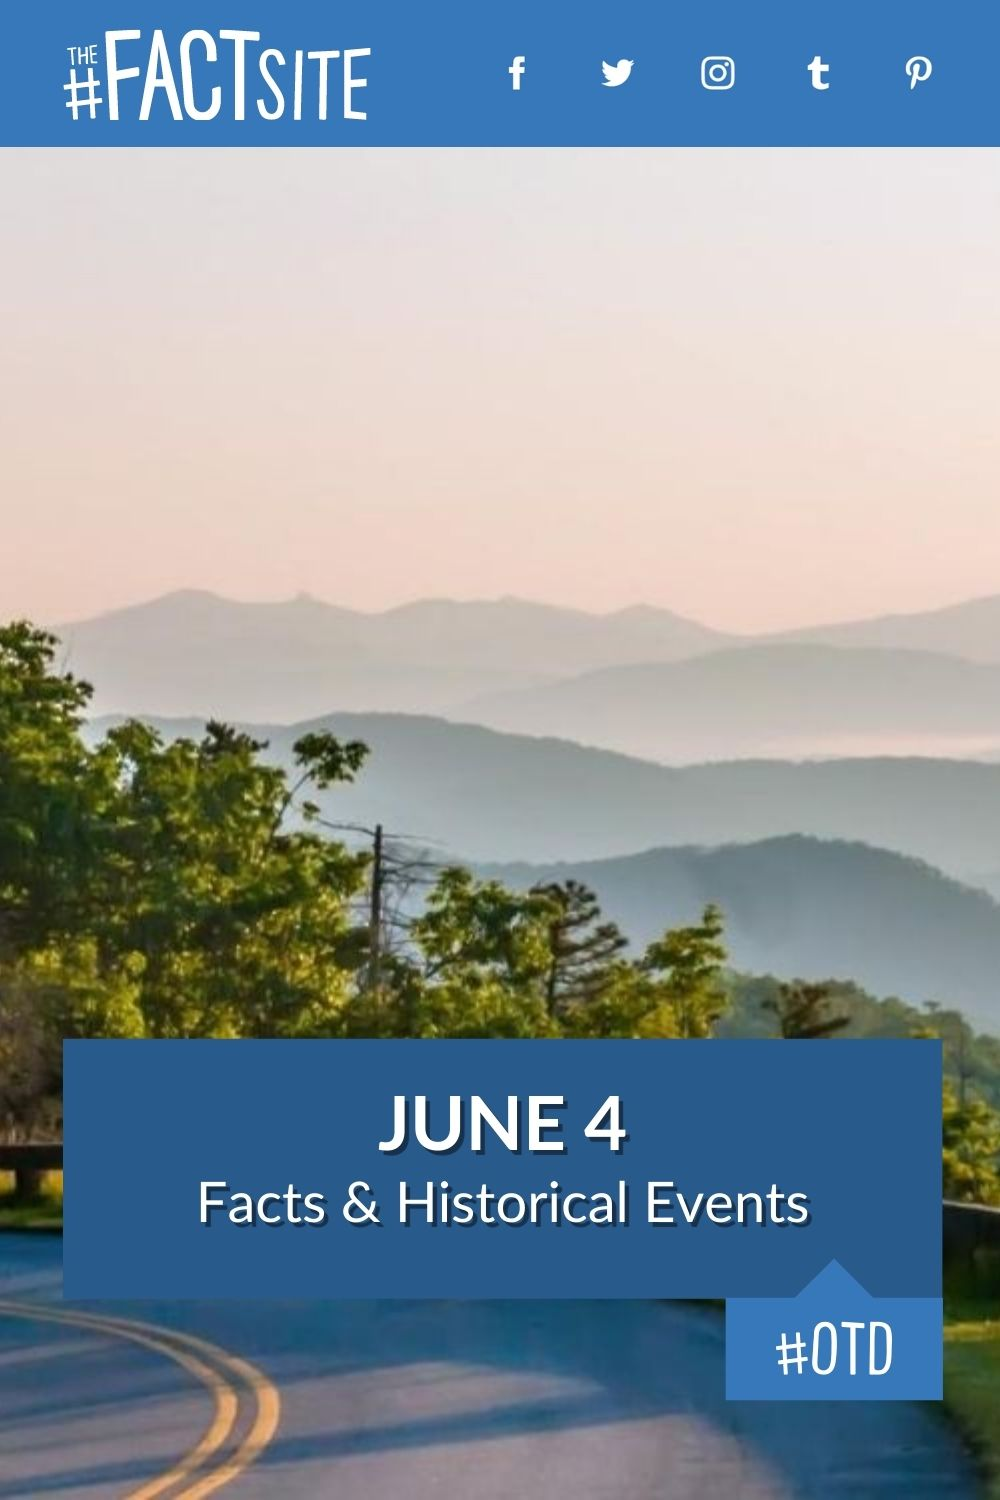 Facts & Historic Events That Happened on June 4